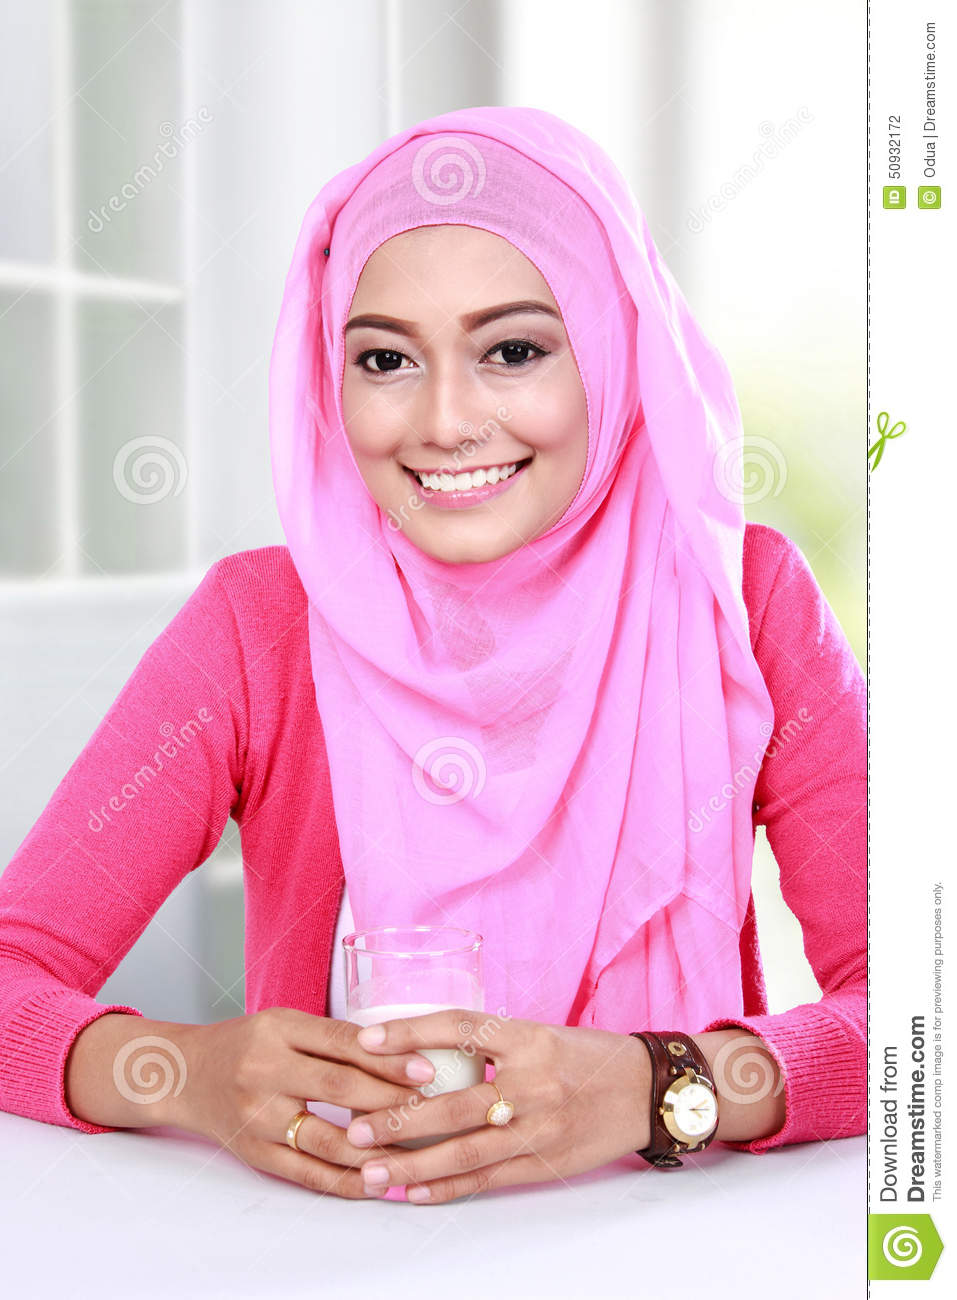 dairy muslim girl personals Dairy's best 100% free catholic girls dating site meet thousands of single catholic women in dairy with mingle2's free personal ads and chat rooms our network of catholic women in dairy is the perfect place to make friends or find an catholic girlfriend in dairy.